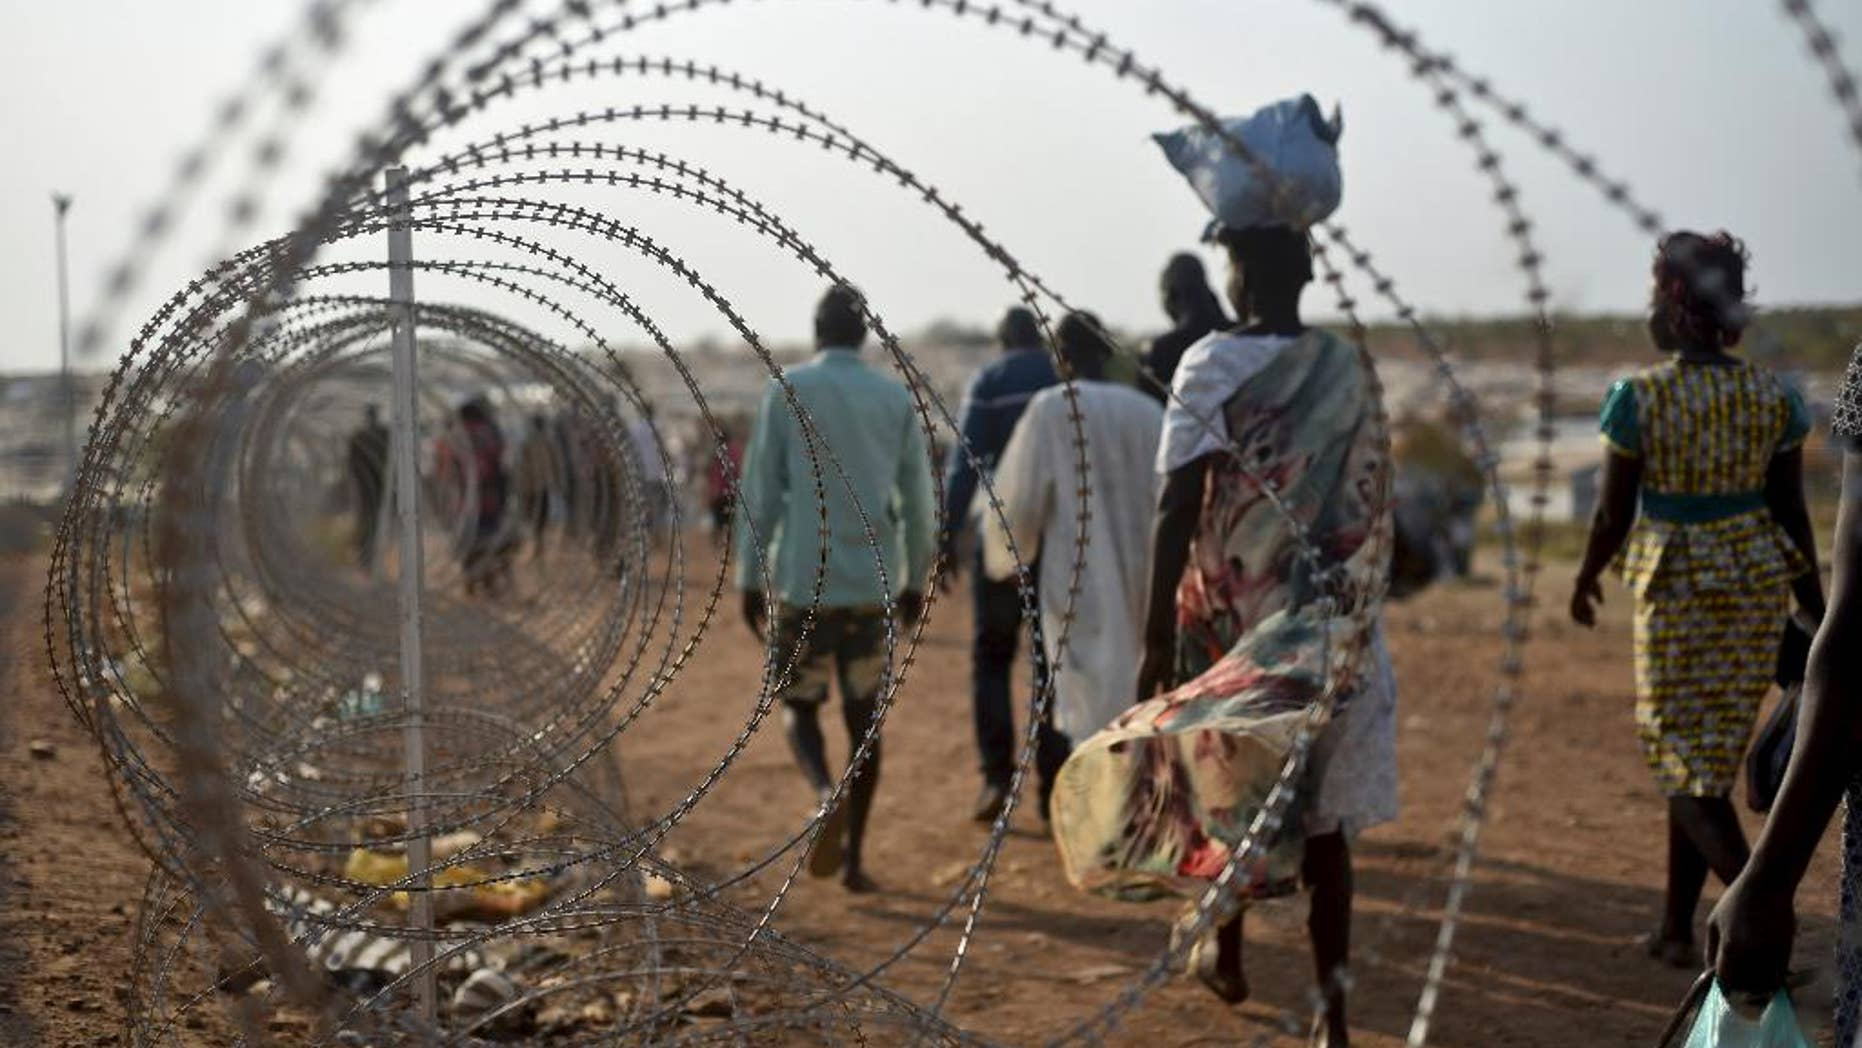 FILE - In this Tuesday Jan. 19, 2016 file photo, displaced people walk next to a razor wire fence at the United Nations base in the capital Juba, South Sudan. A U.N. team of human rights investigators said Friday Dec. 2, 2016, that rape in South Sudan is one of the tools being used for ethnic cleansing, adding that sexual violence in the East African nation has reached epic proportions. (AP Photo/Jason Patinkin, File)